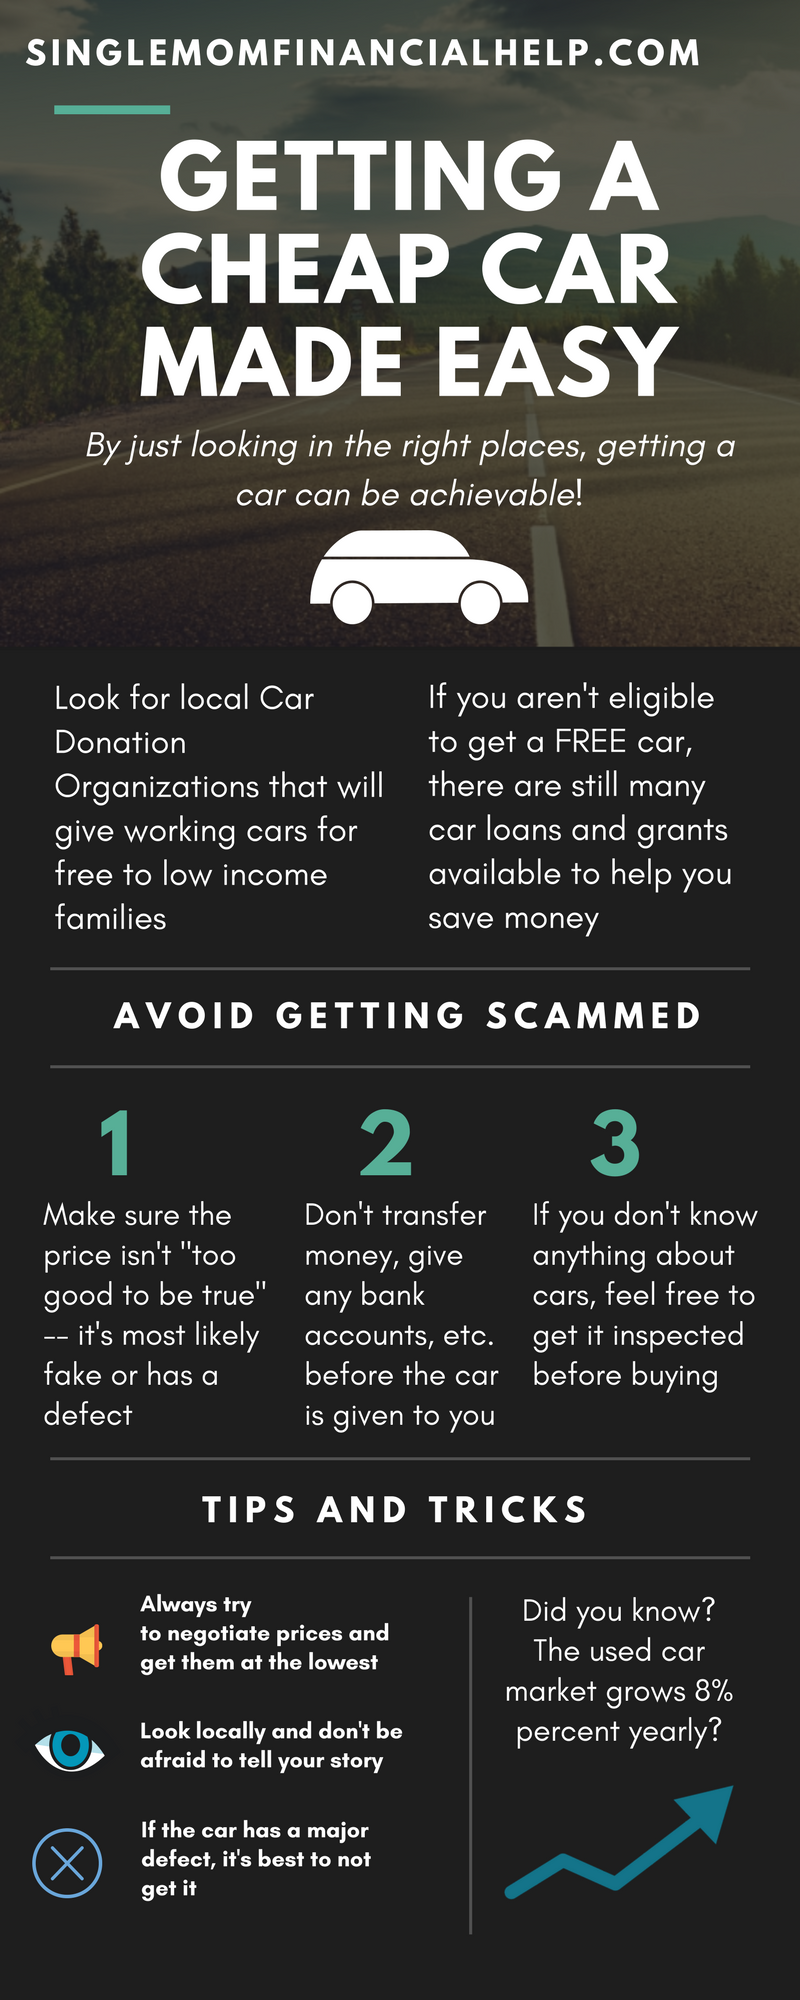 Getting a Car Made Easy #infographic http://bit.ly/2mvUxoF ...